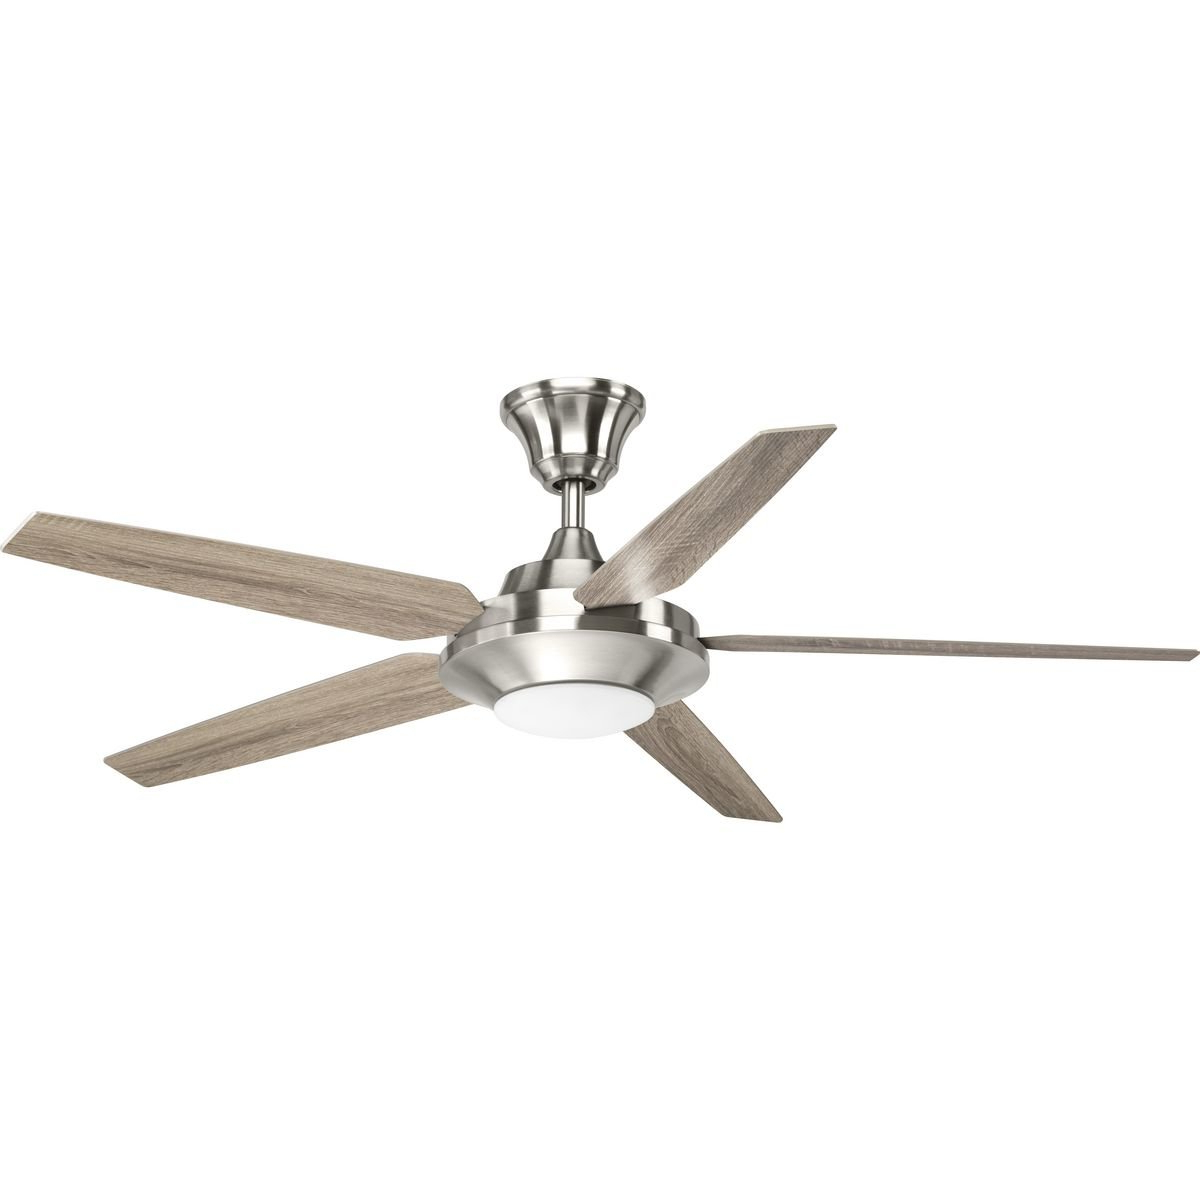 "Most Recent Cillian 6 Blade Ceiling Fans For 54"" Searles 5 Blade Led Ceiling Fan With Remote, Light Kit Included (View 12 of 20)"